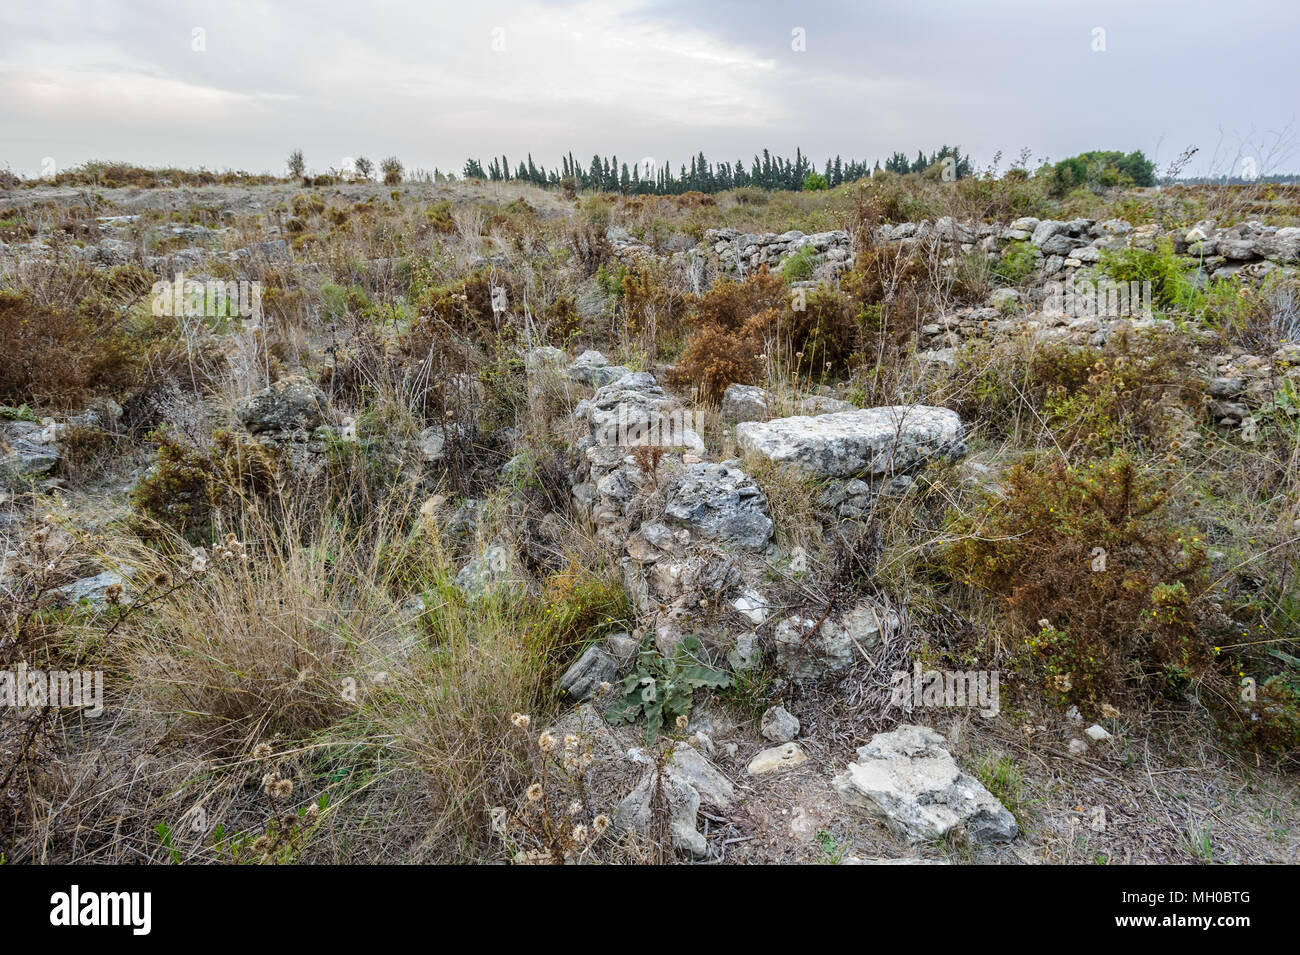 Ruins of the Royal Palace of Ugarit, the royal residence of the rulers of the ancient kingdom of Ugarit on the Mediterranean coast of Syria. - Stock Image